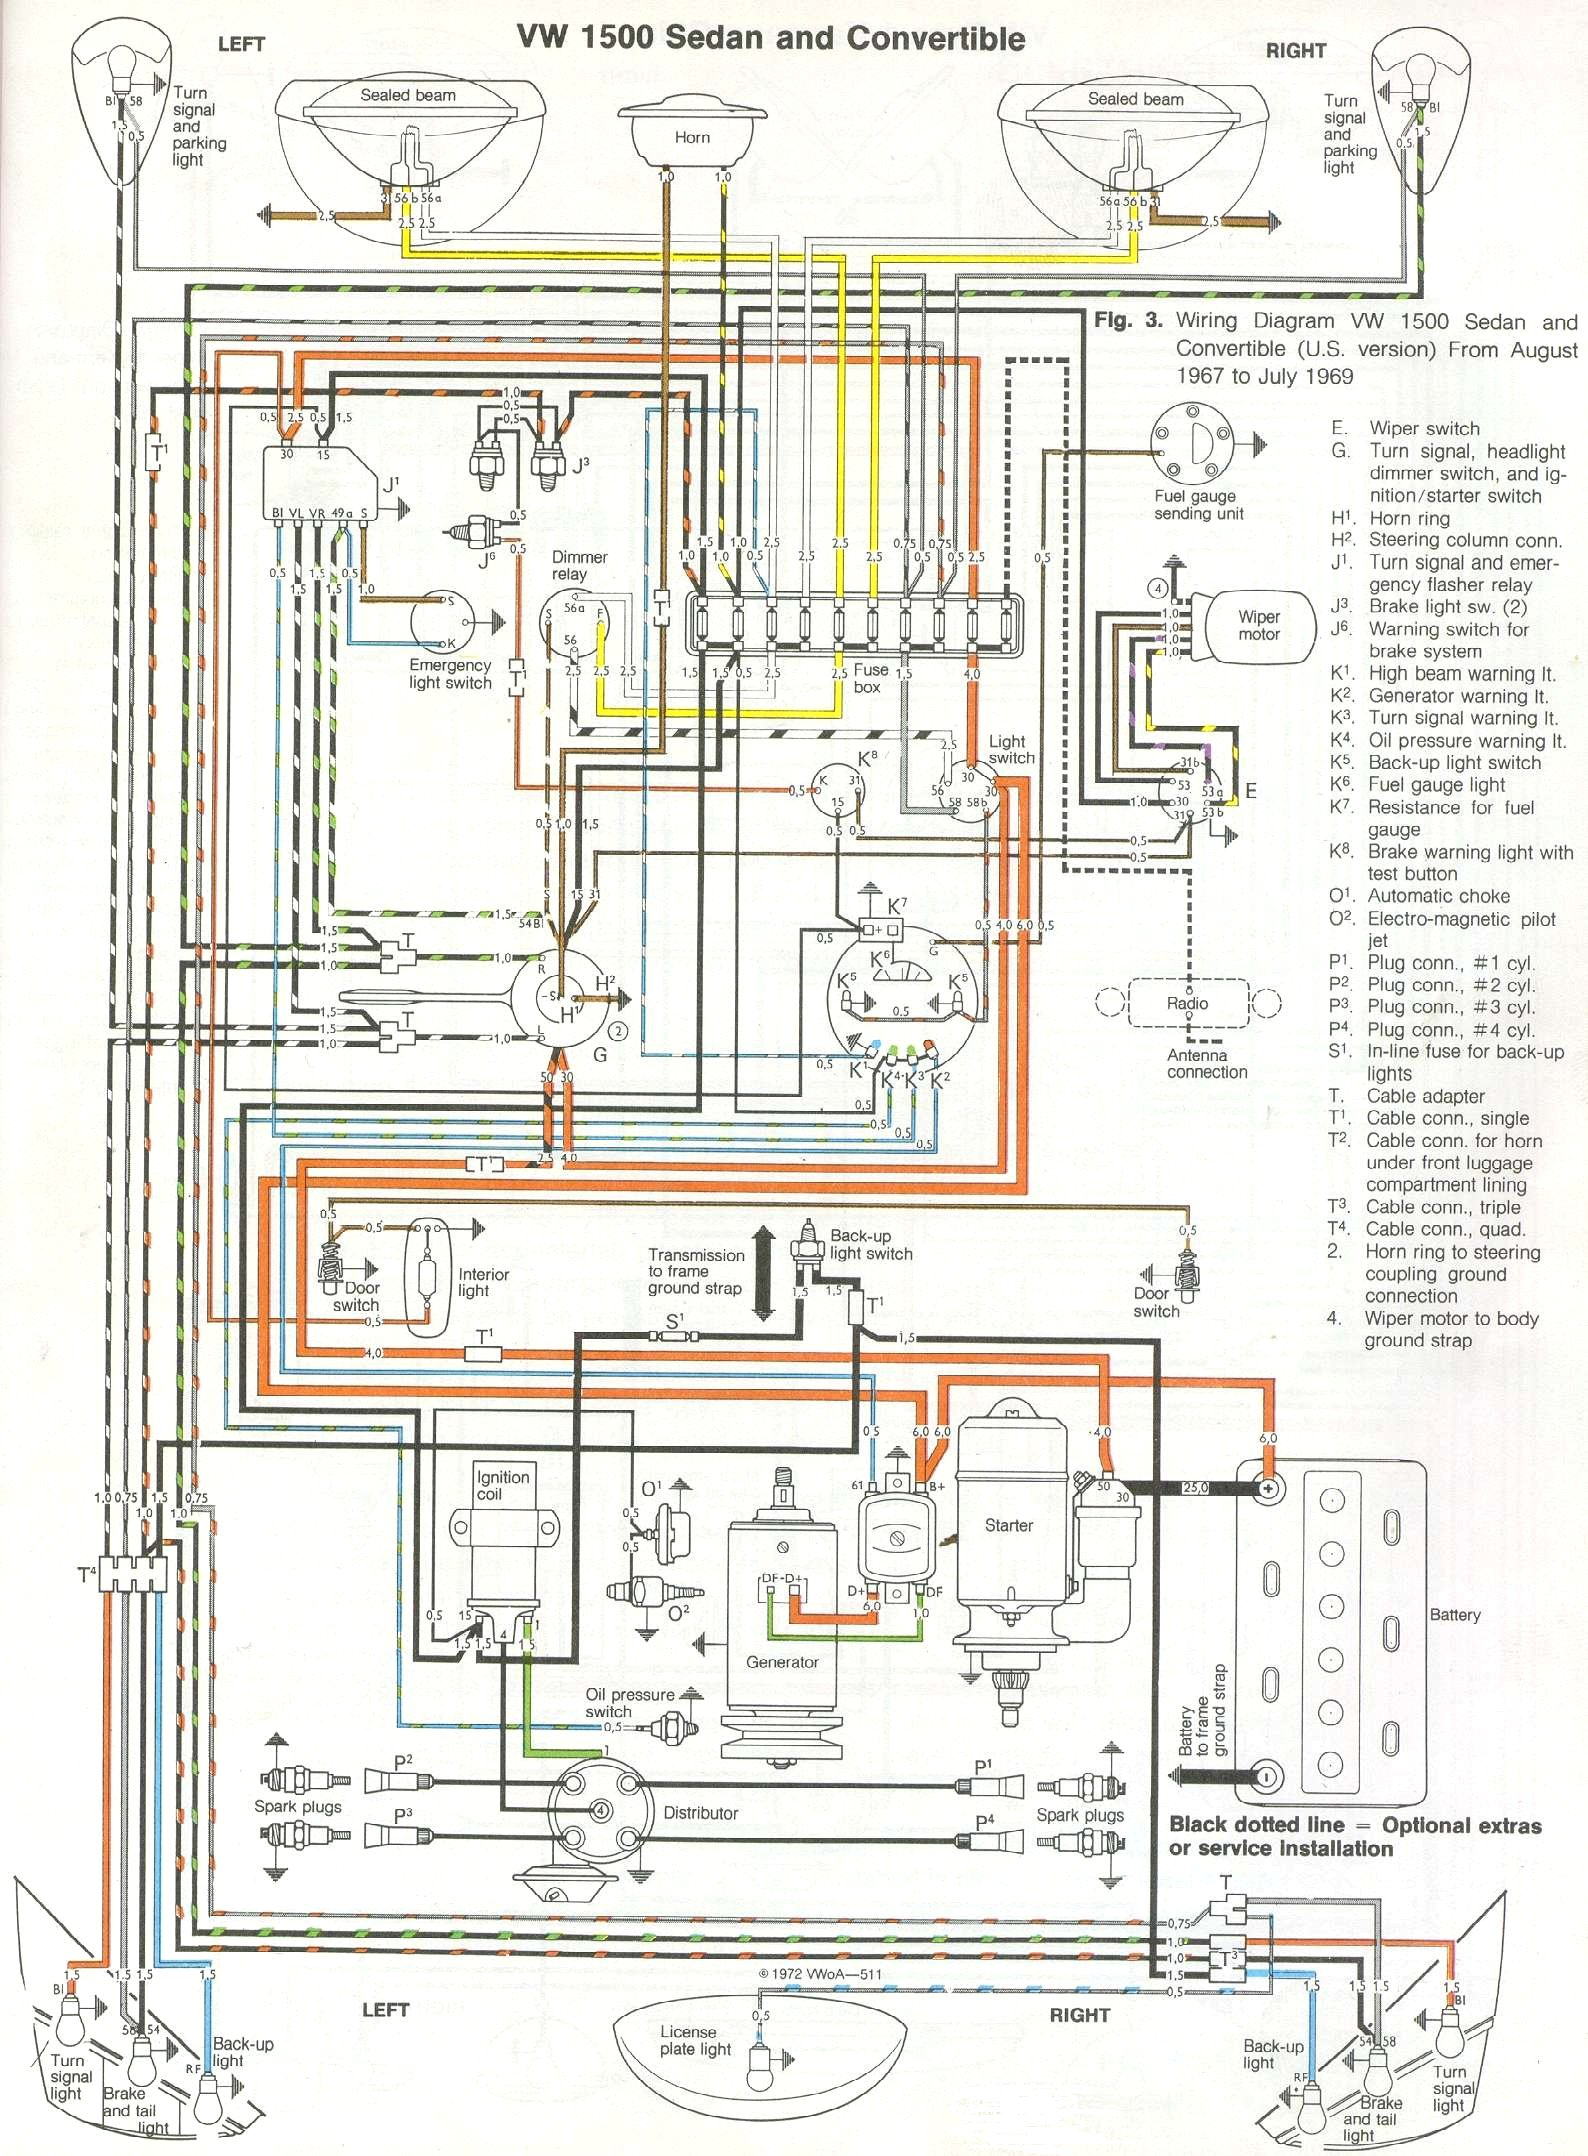 1998 vw cabrio wiring diagram volkswagen wiring diagram volkswagen wiring diagrams online thesamba com type 1 wiring diagrams description volkswagen wiring